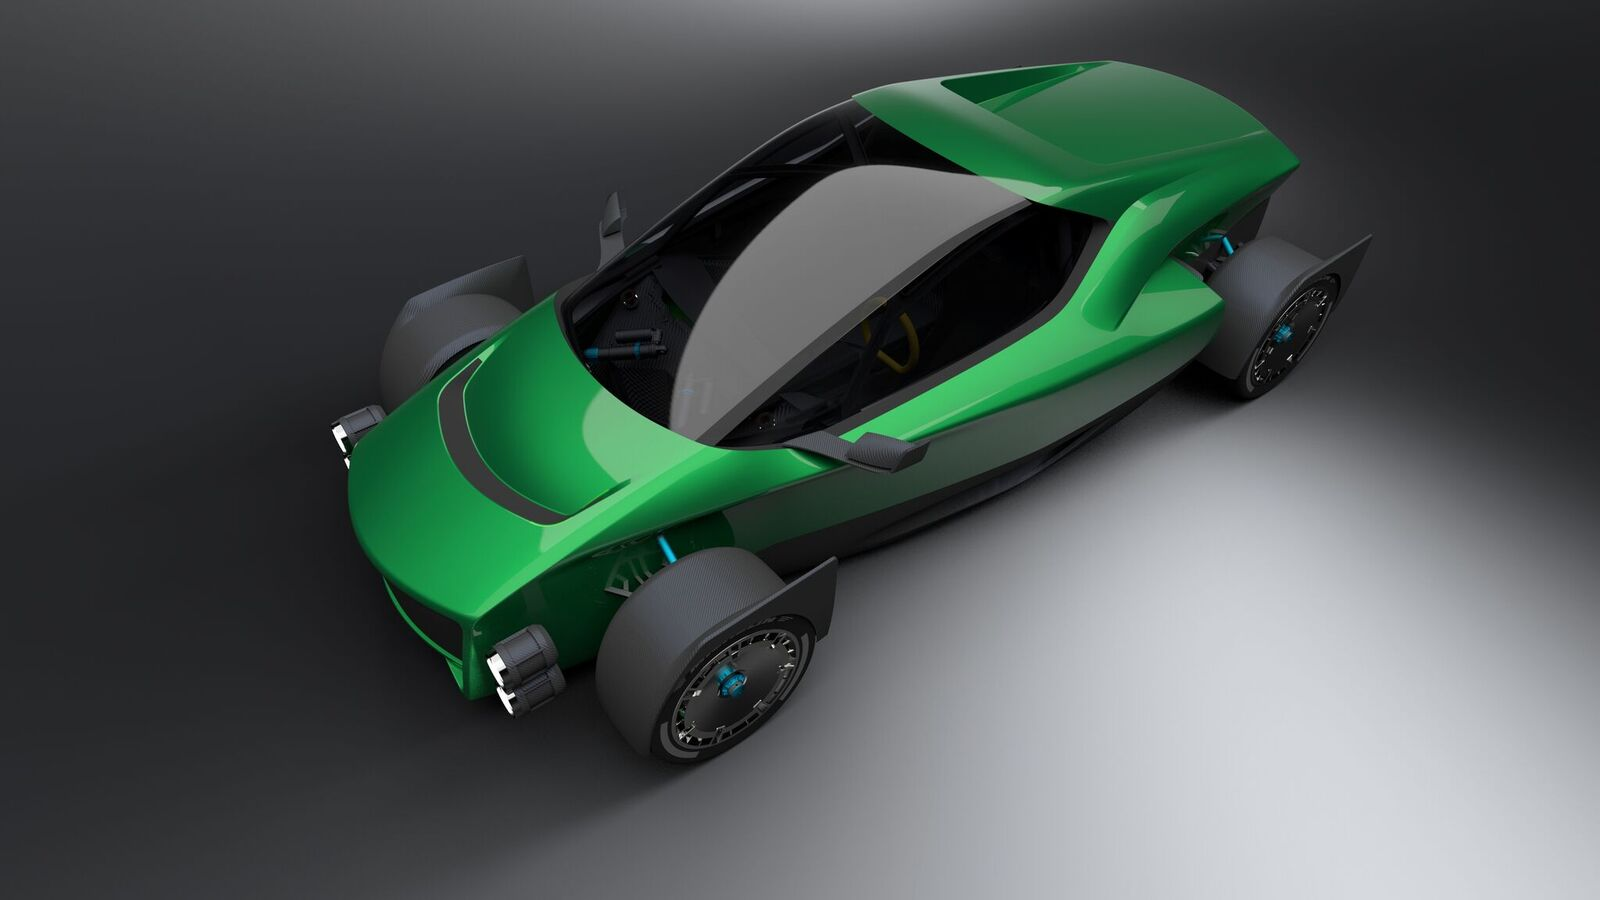 The-Electric-Supercar-XING-Mobility-2